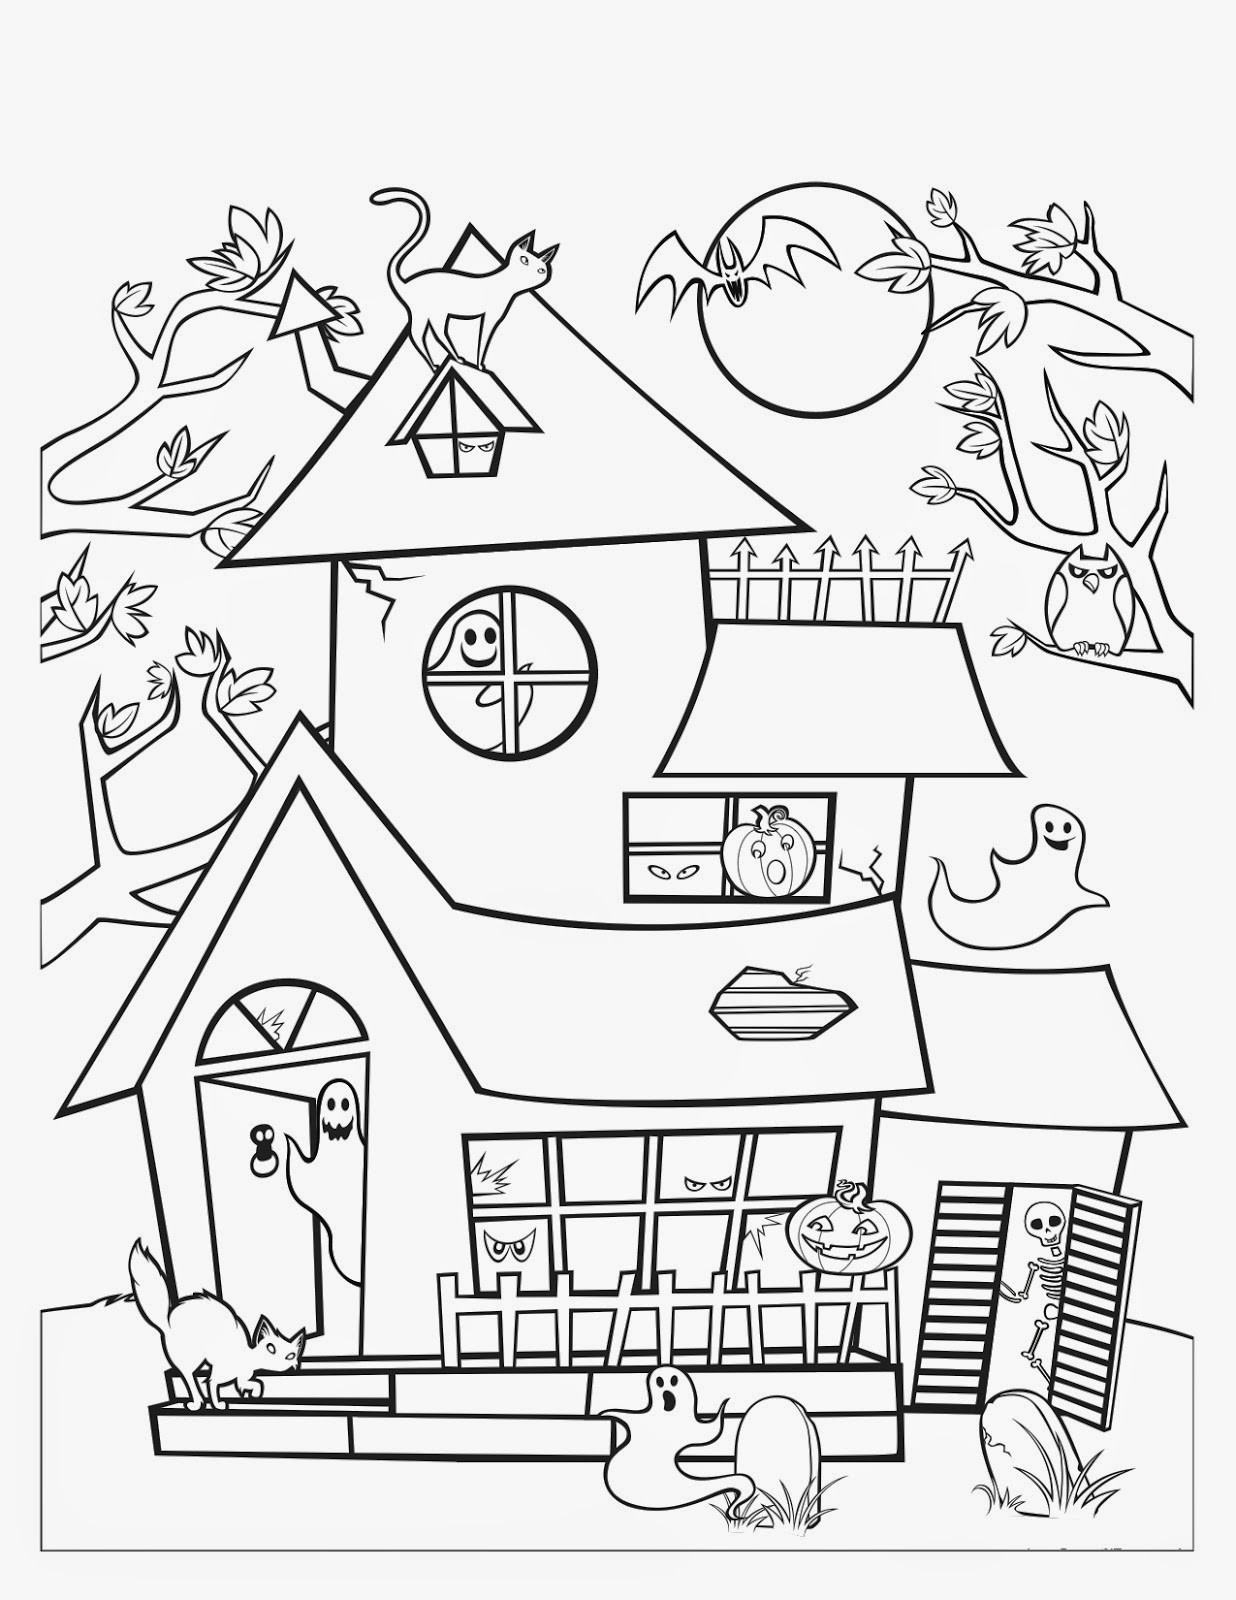 1236x1600 Halloween Castle Coloring Page For Kids Awesome Drawn House